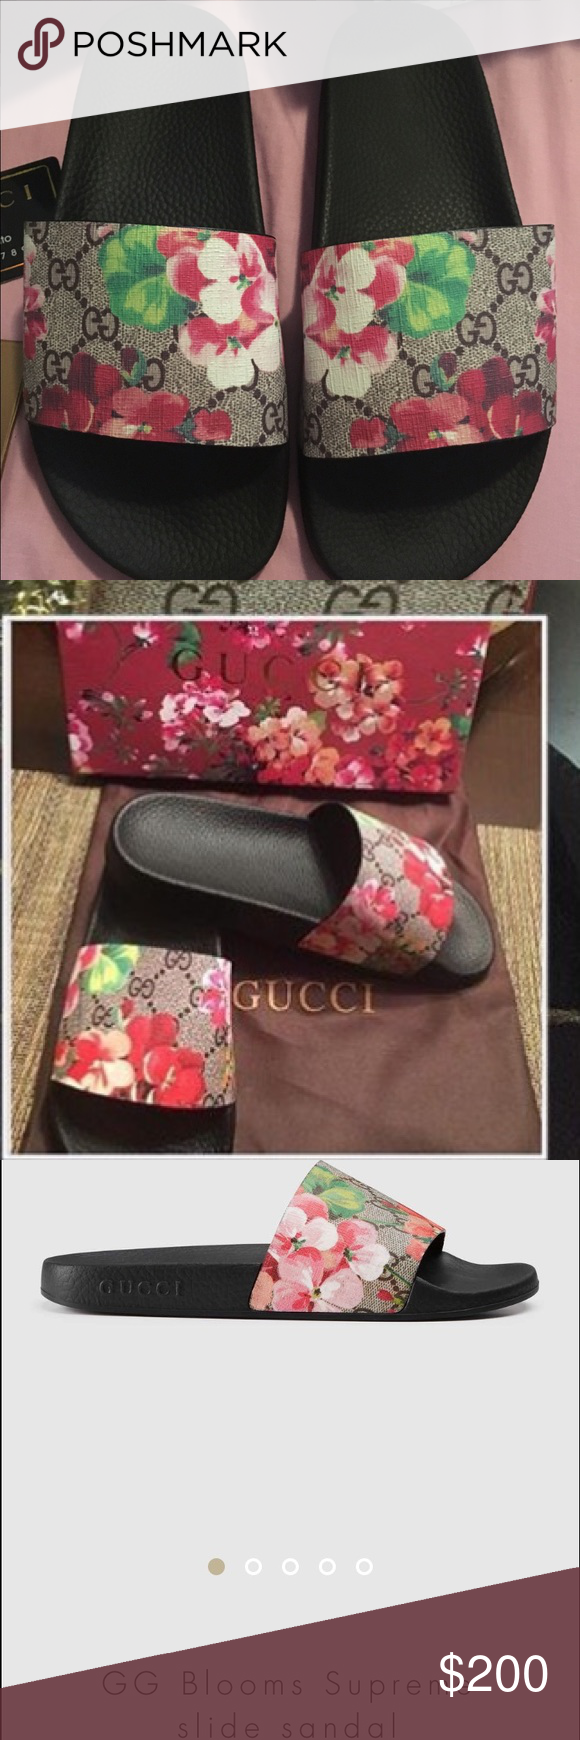 3288b36cef62 GG Blooms Supreme Slide Sandal Comfortable floral slide sandal perfect for  a casual day out. Gucci Shoes Sandals